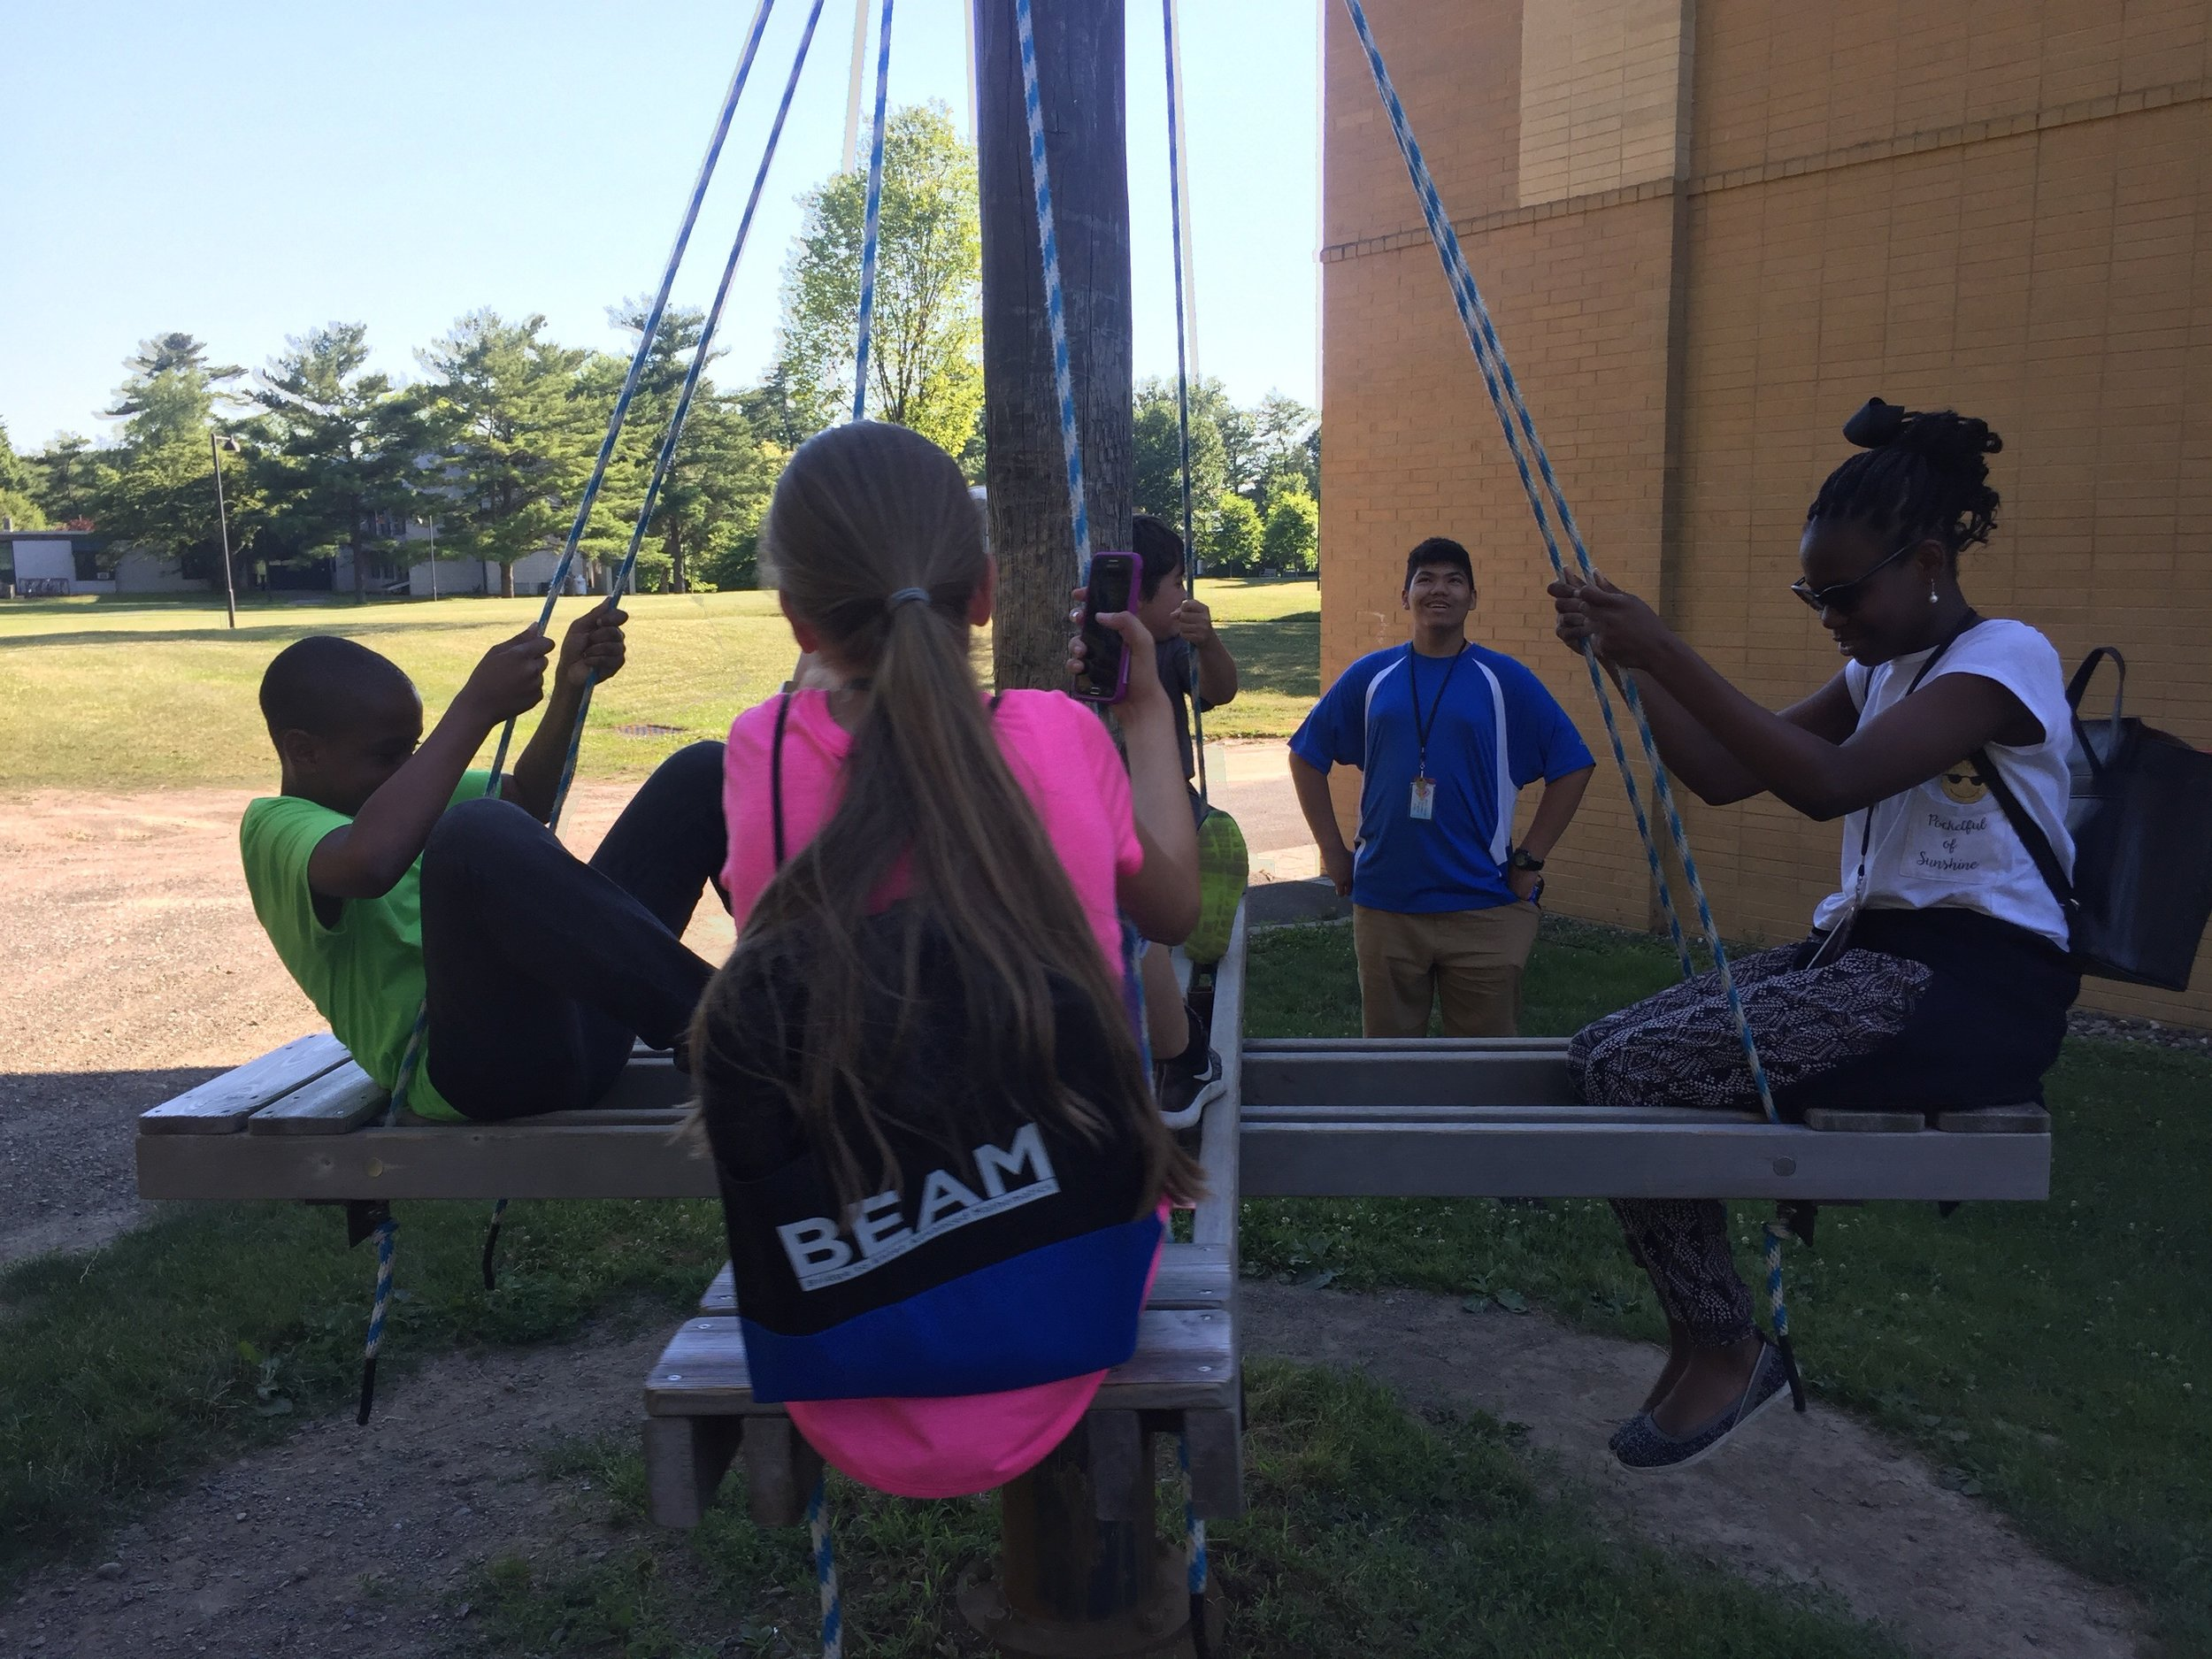 BEAM students on swing outside Student Center.